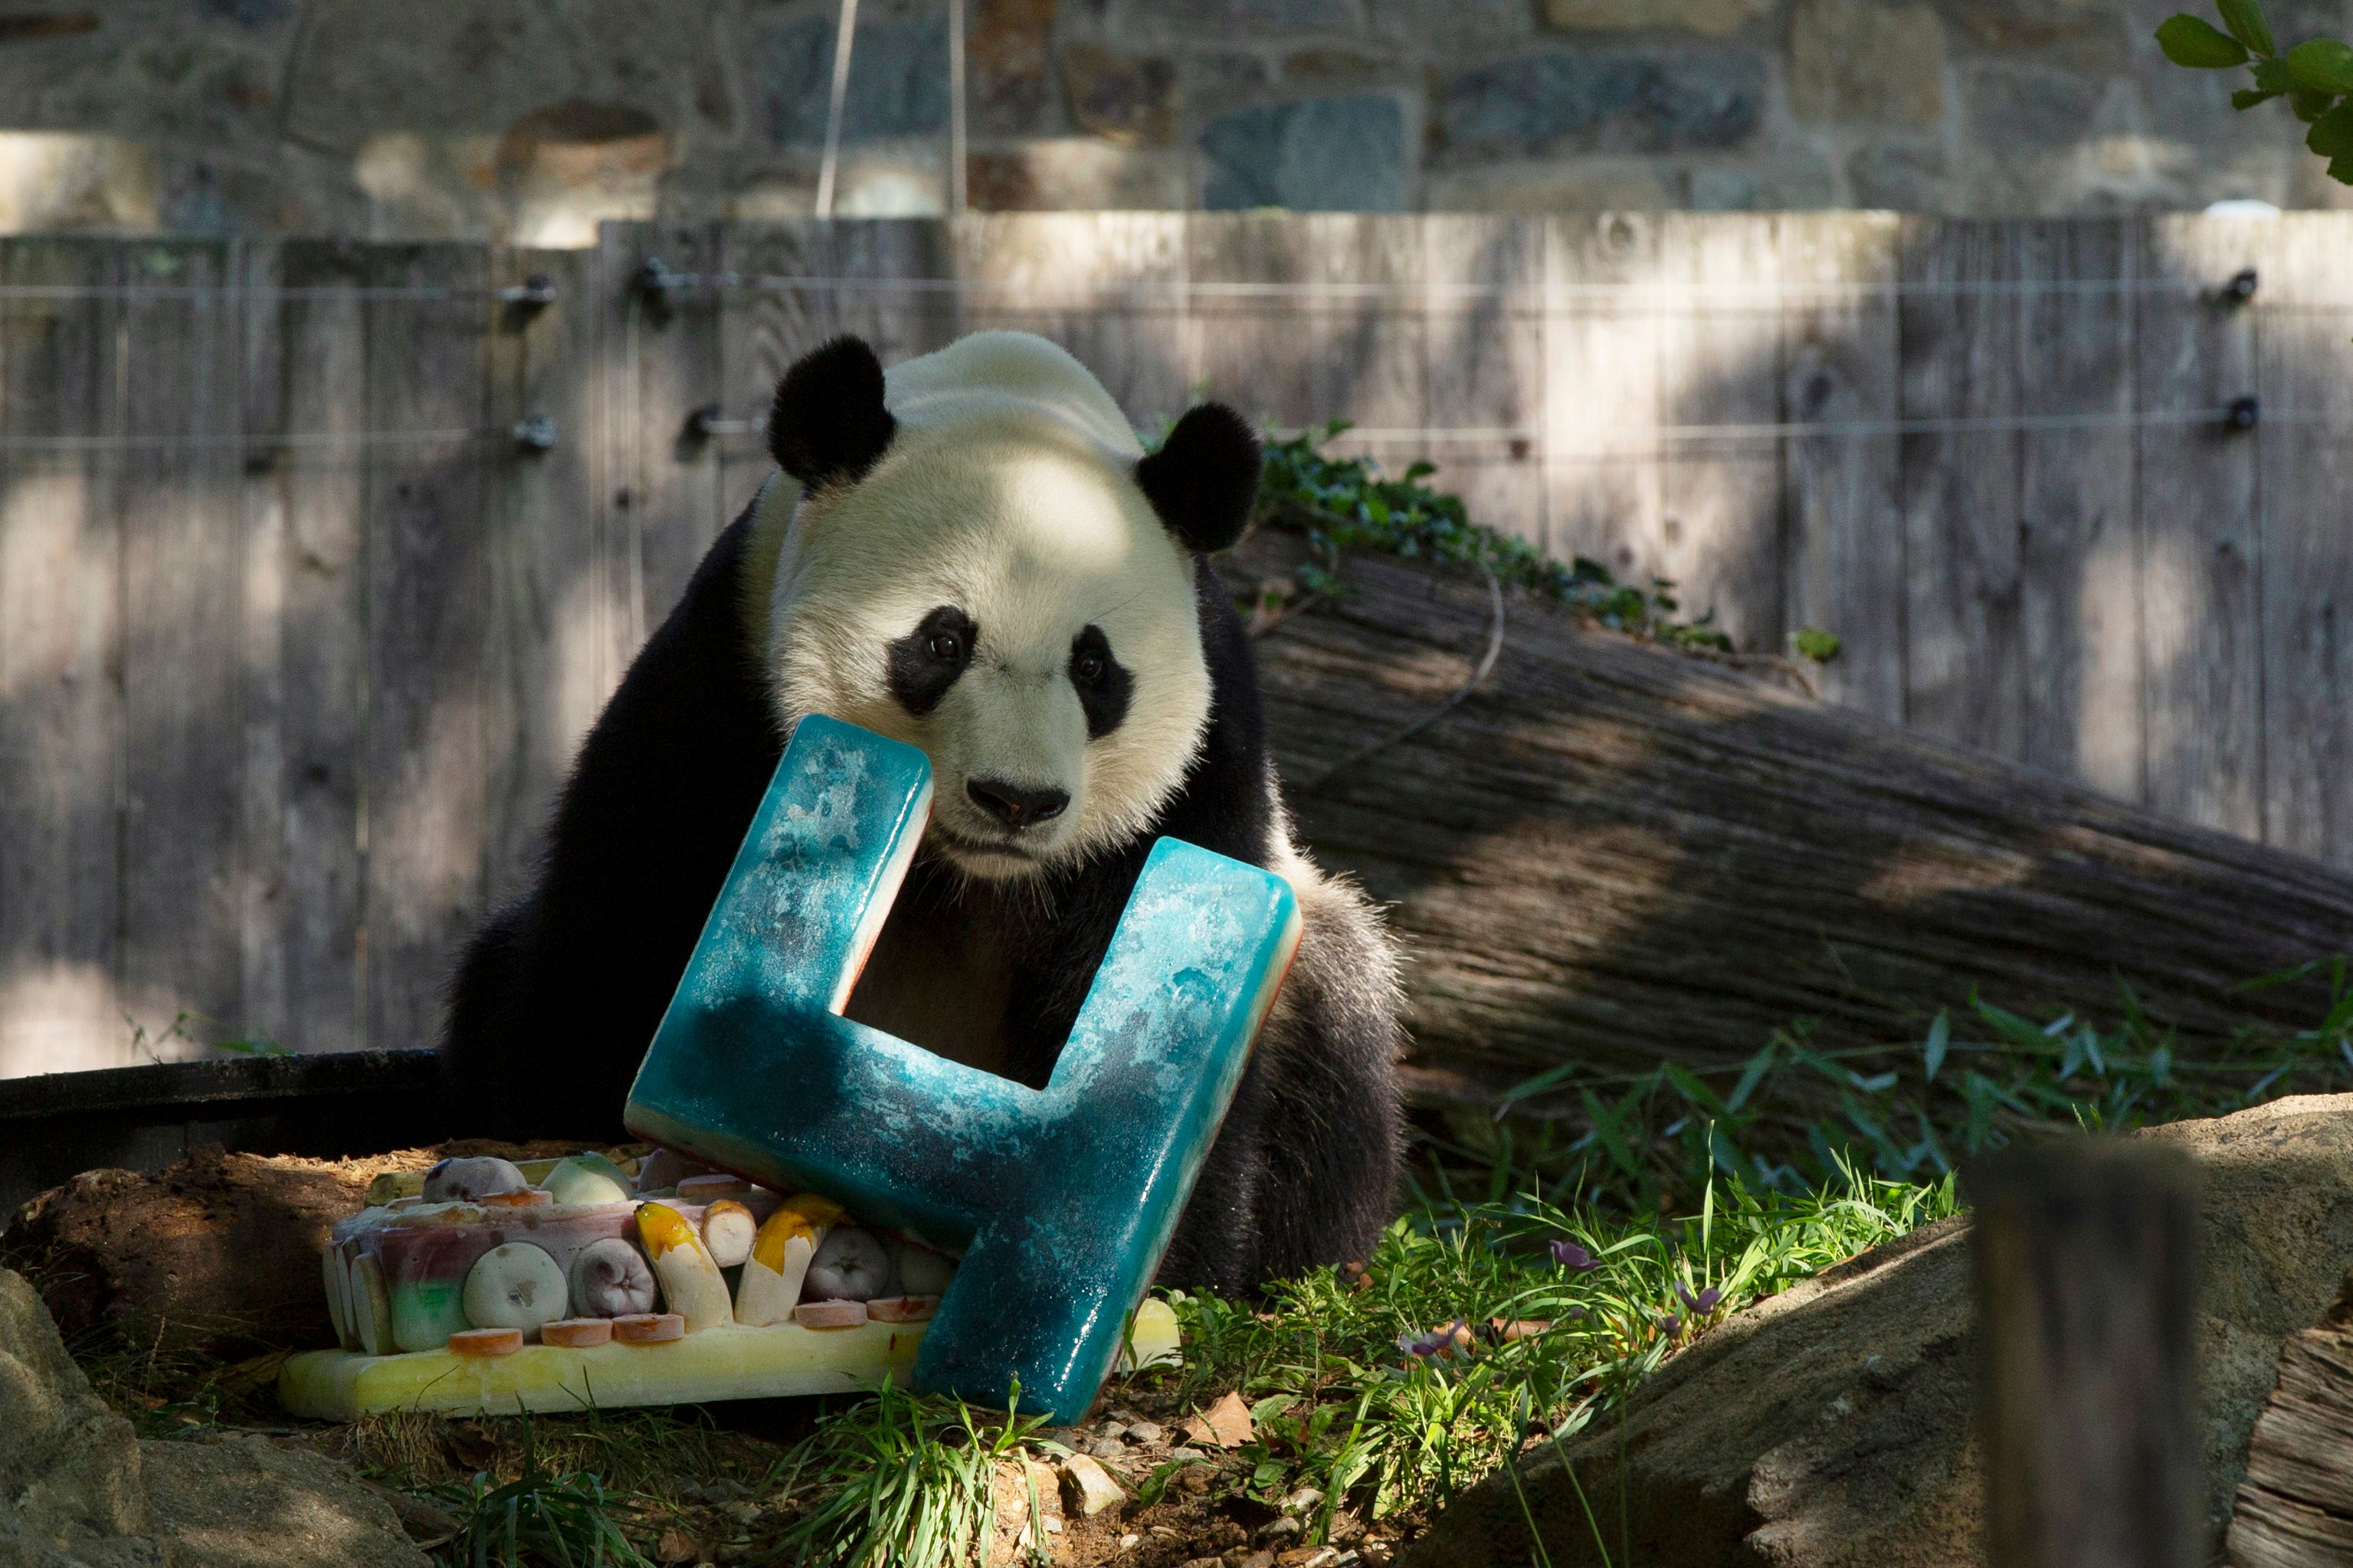 Giant panda Bei Bei will have to say goodbye to U.S. next month